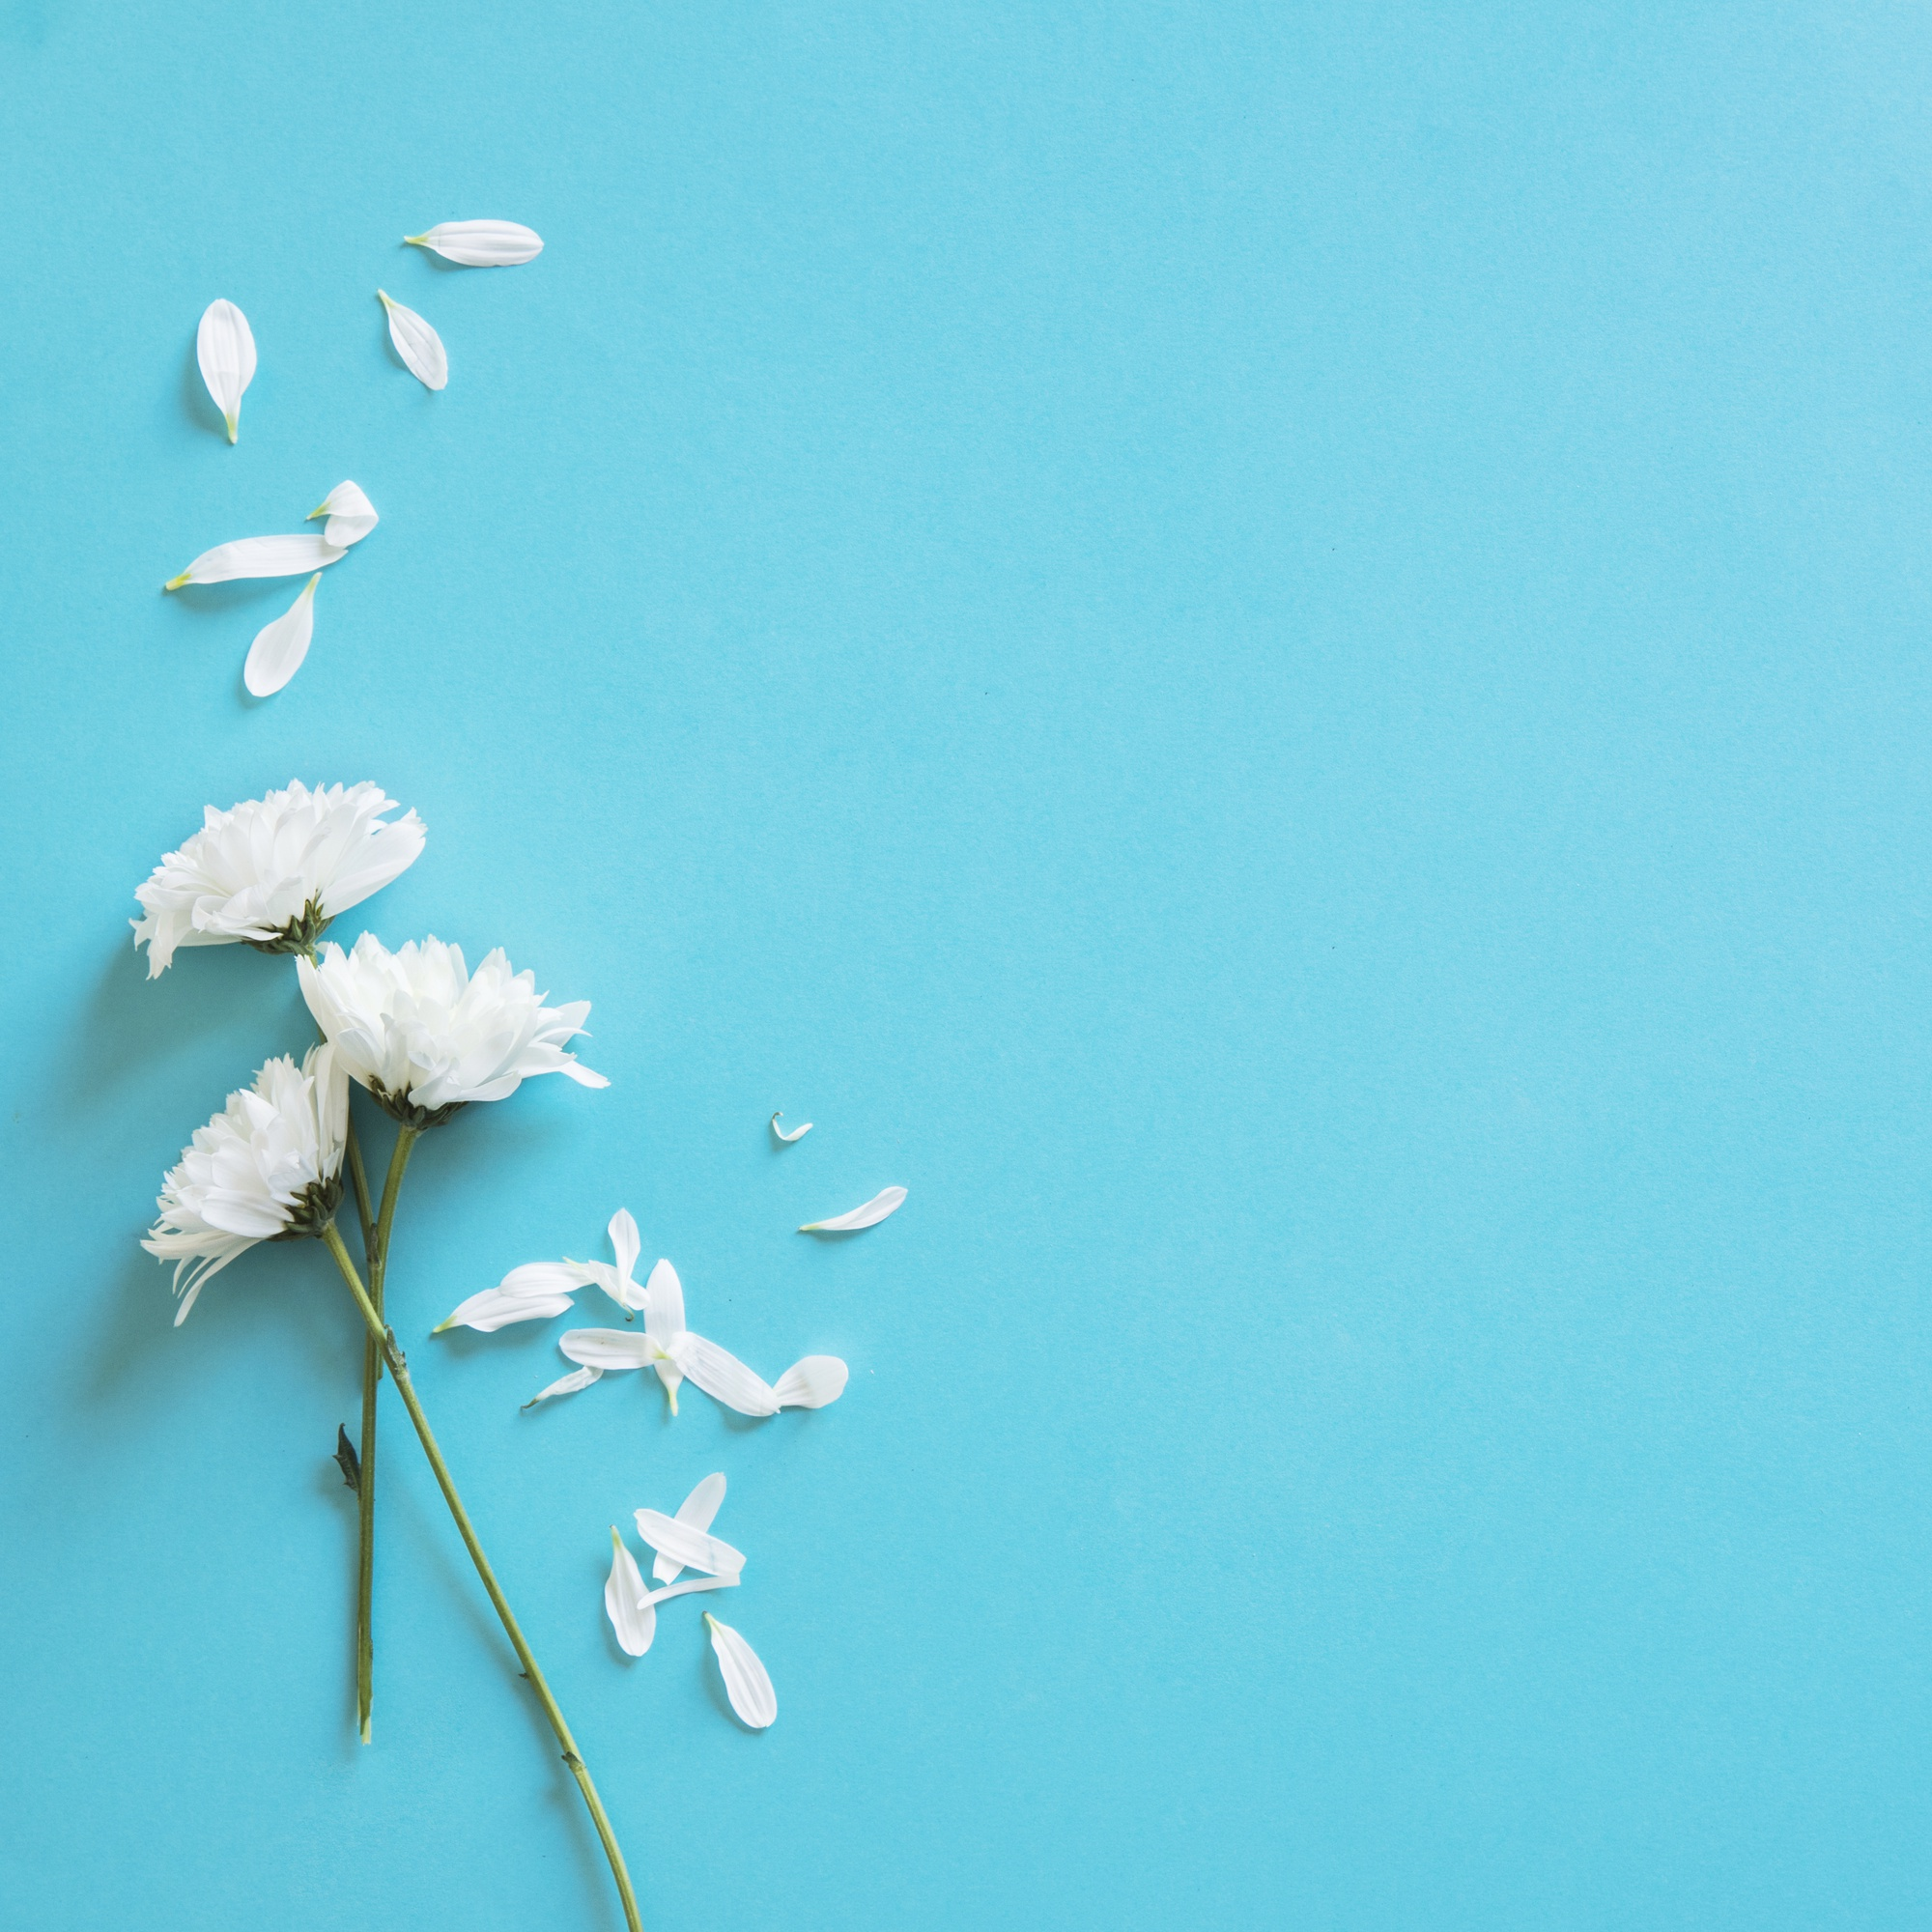 White flowers and petals